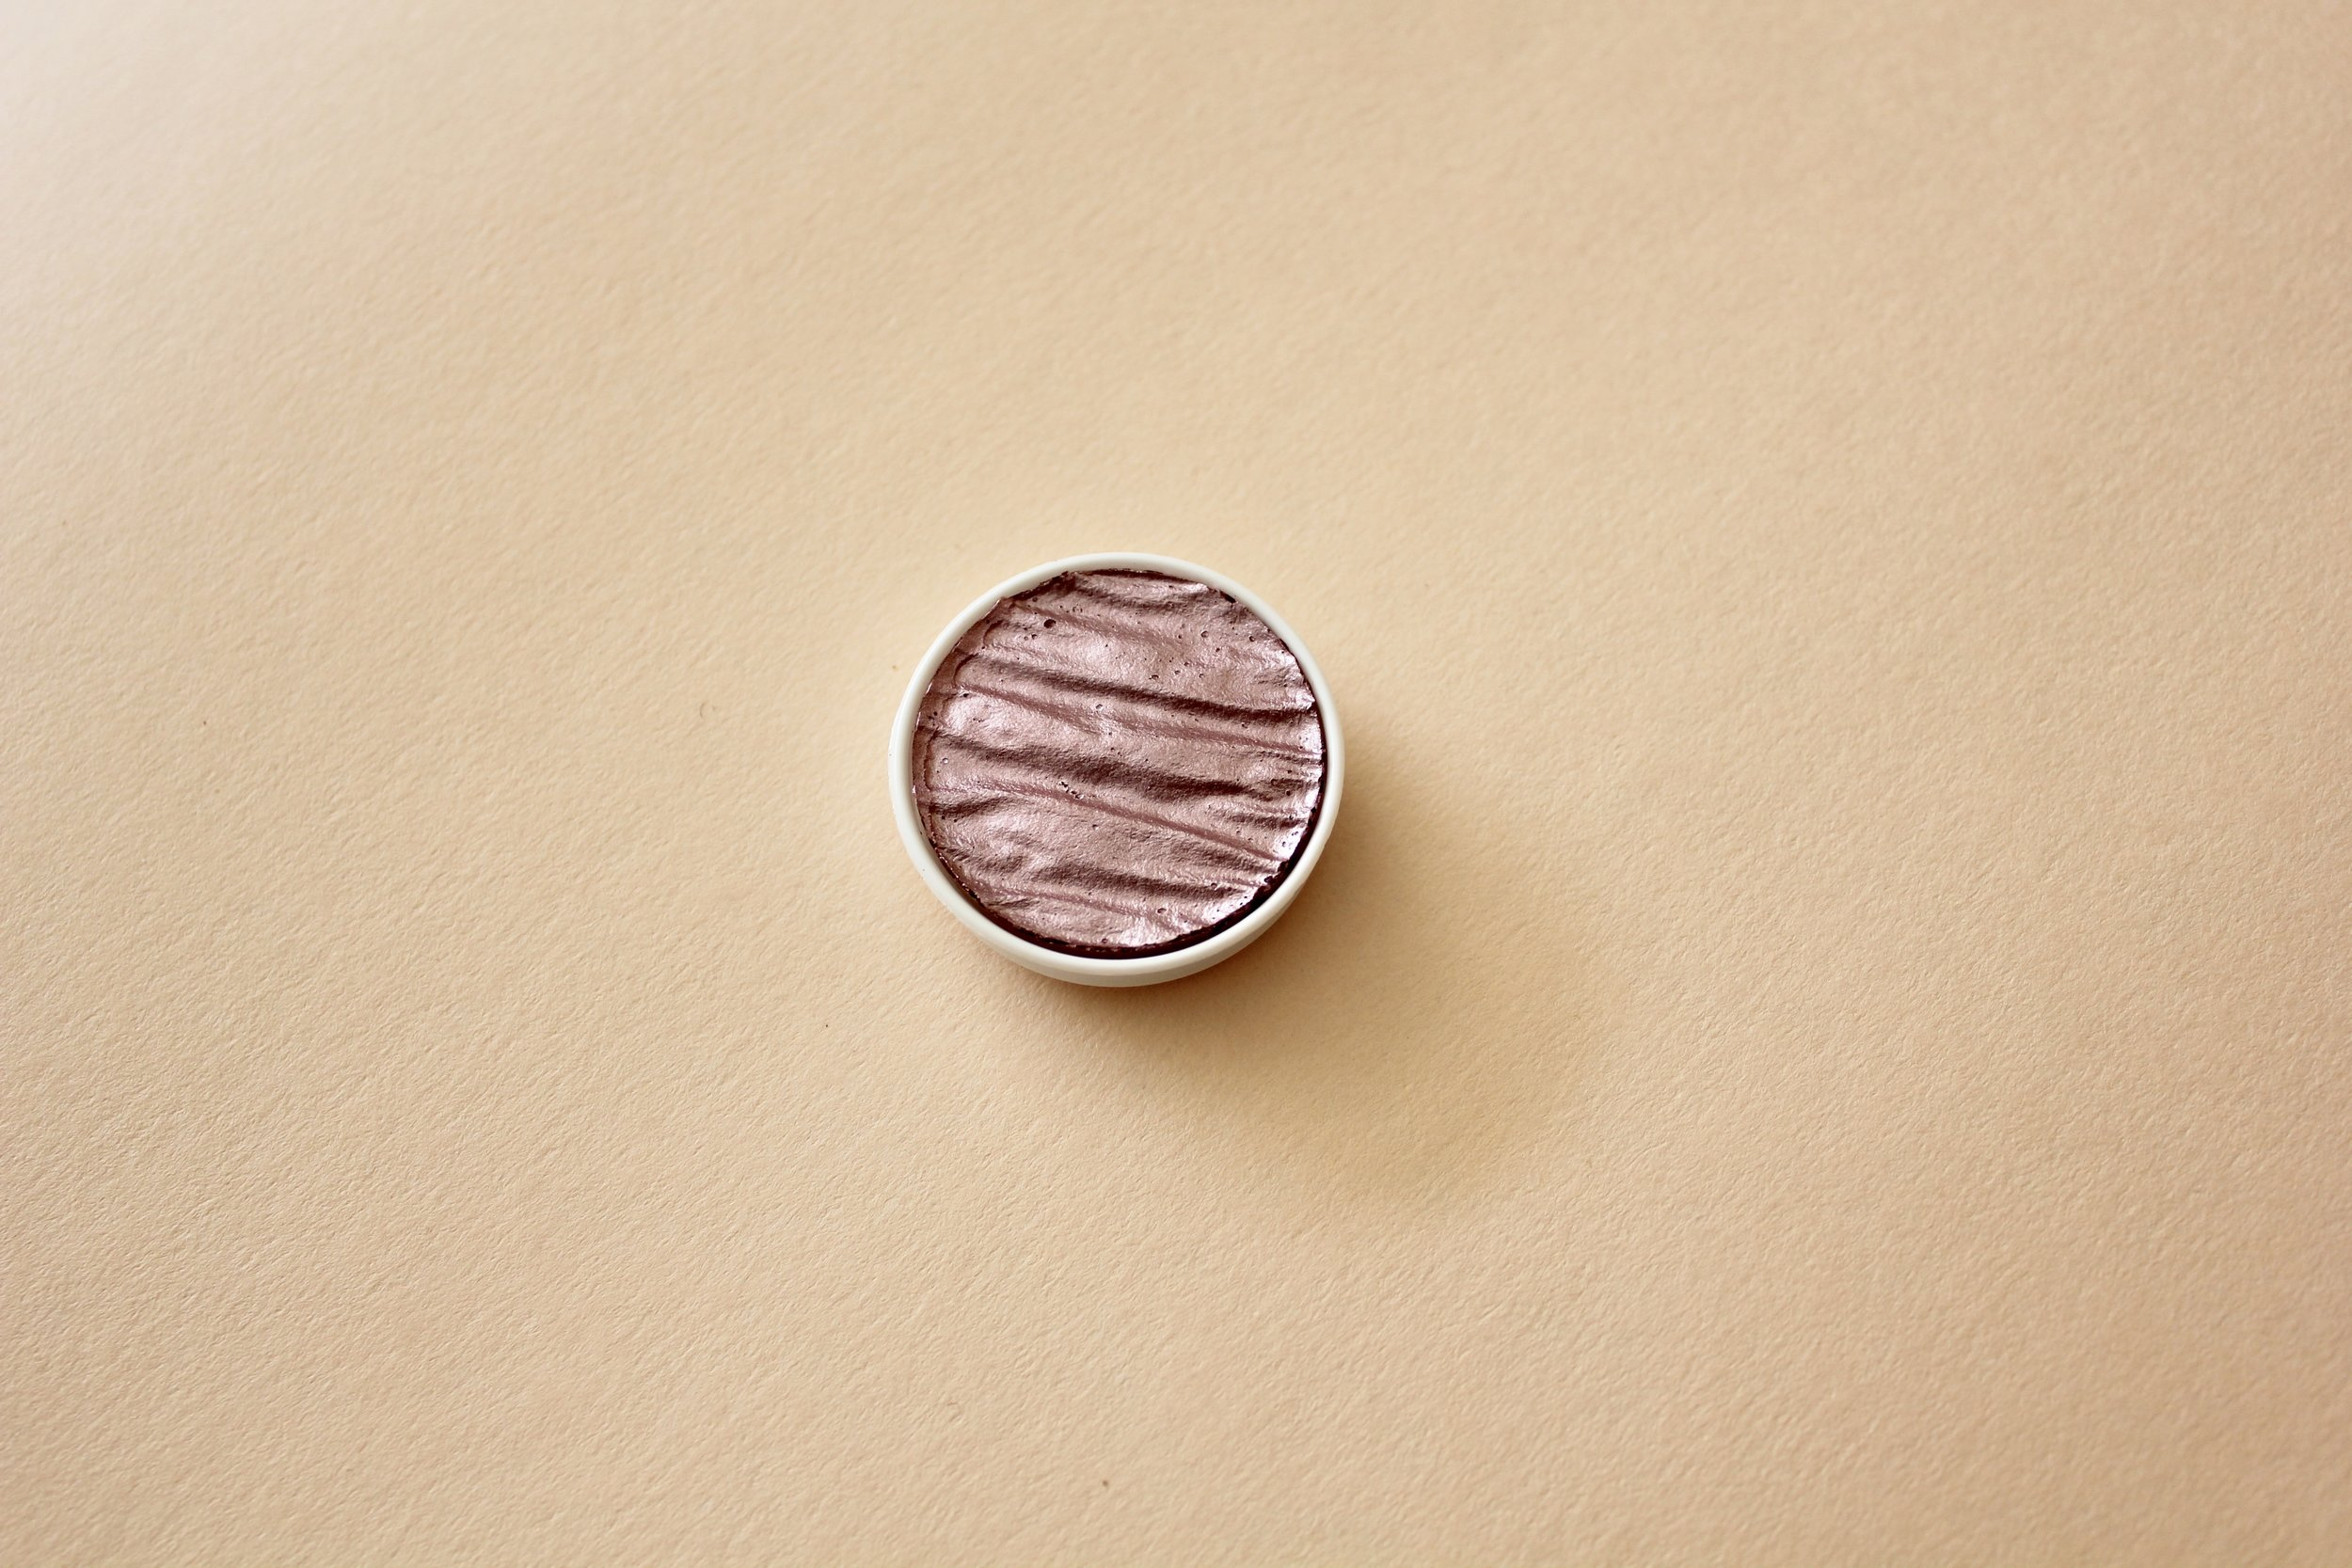 LR00113 Coliro Rose 30mm ($8)